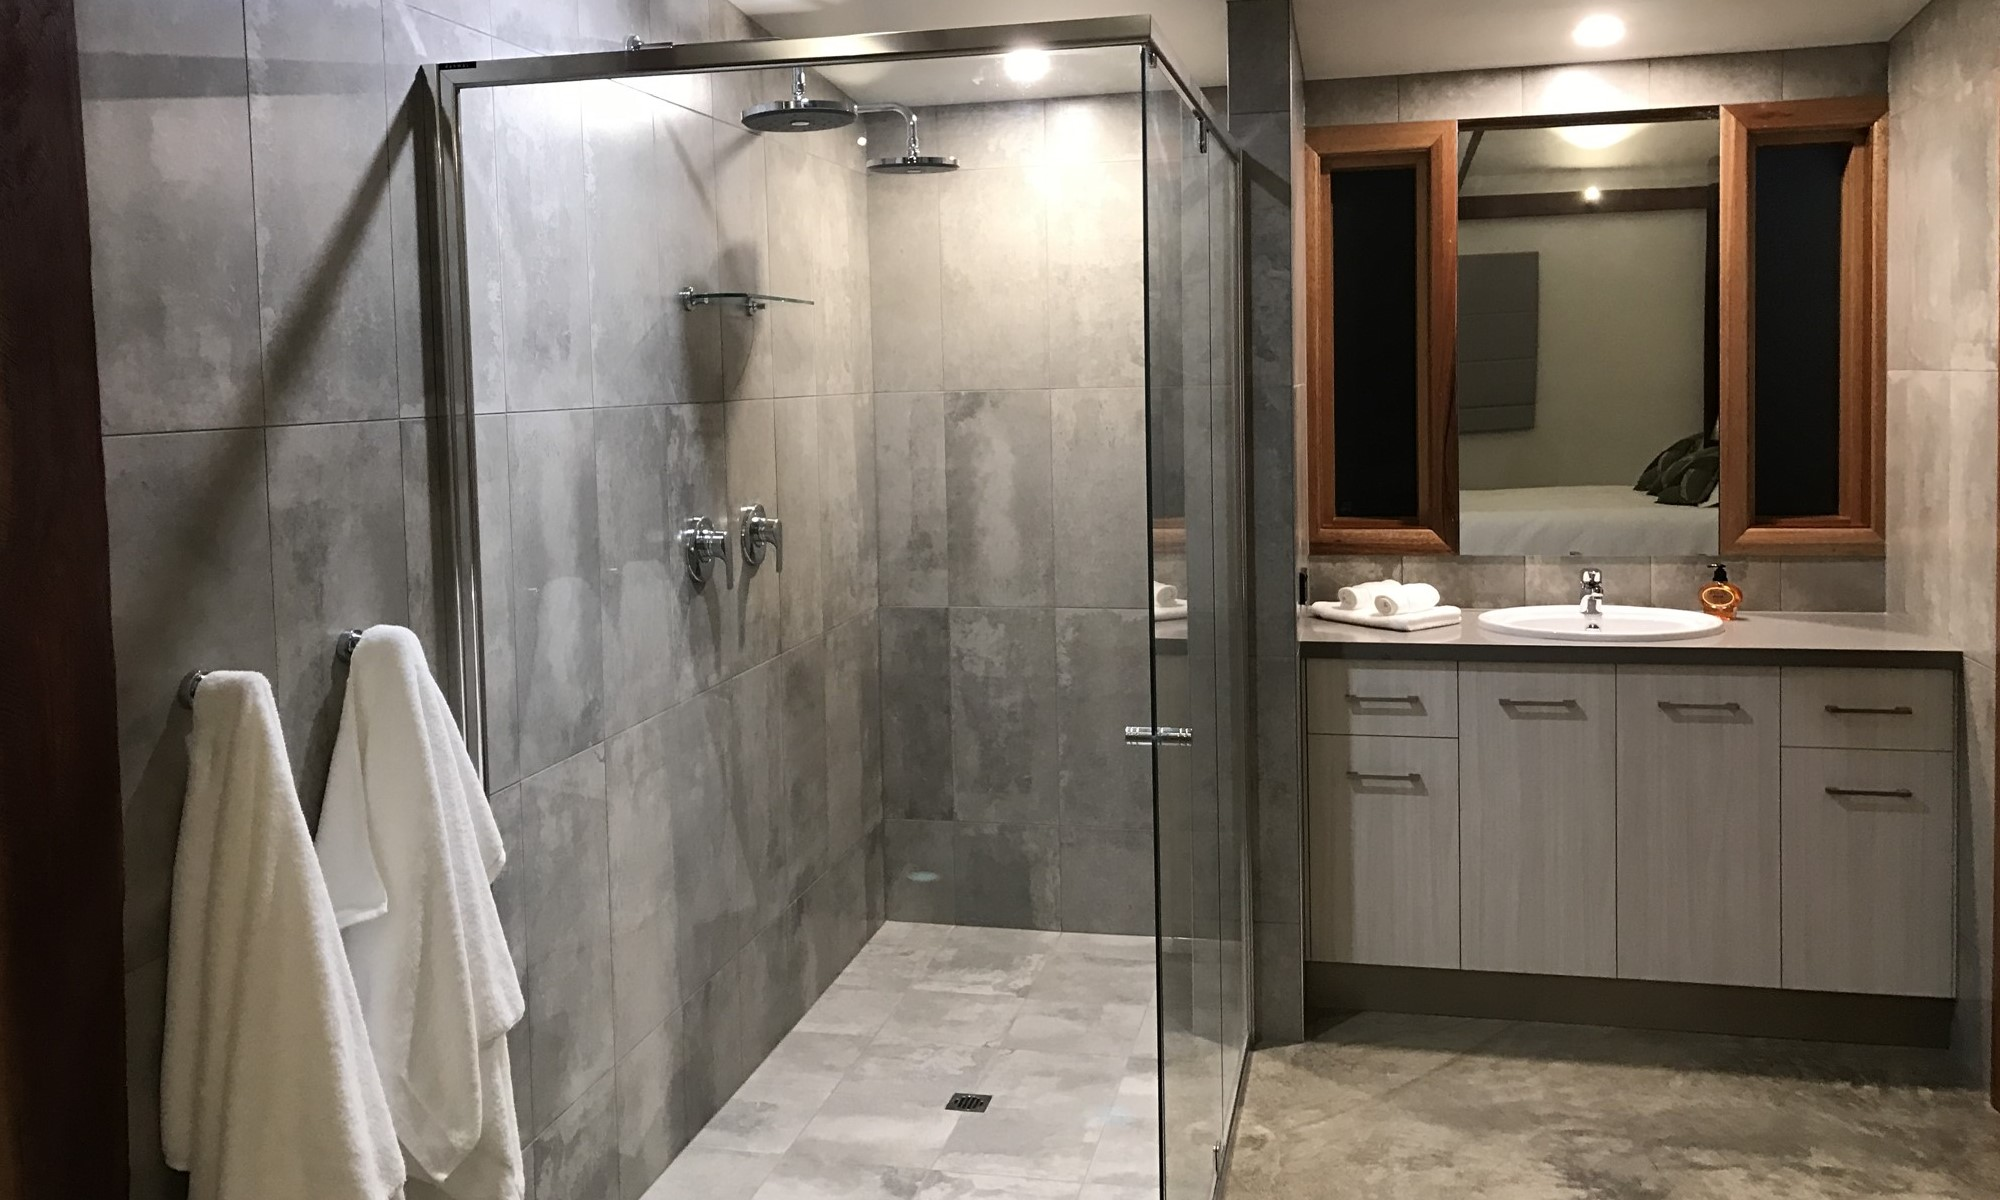 Amazing facilities - we have had many comments about the double shower!